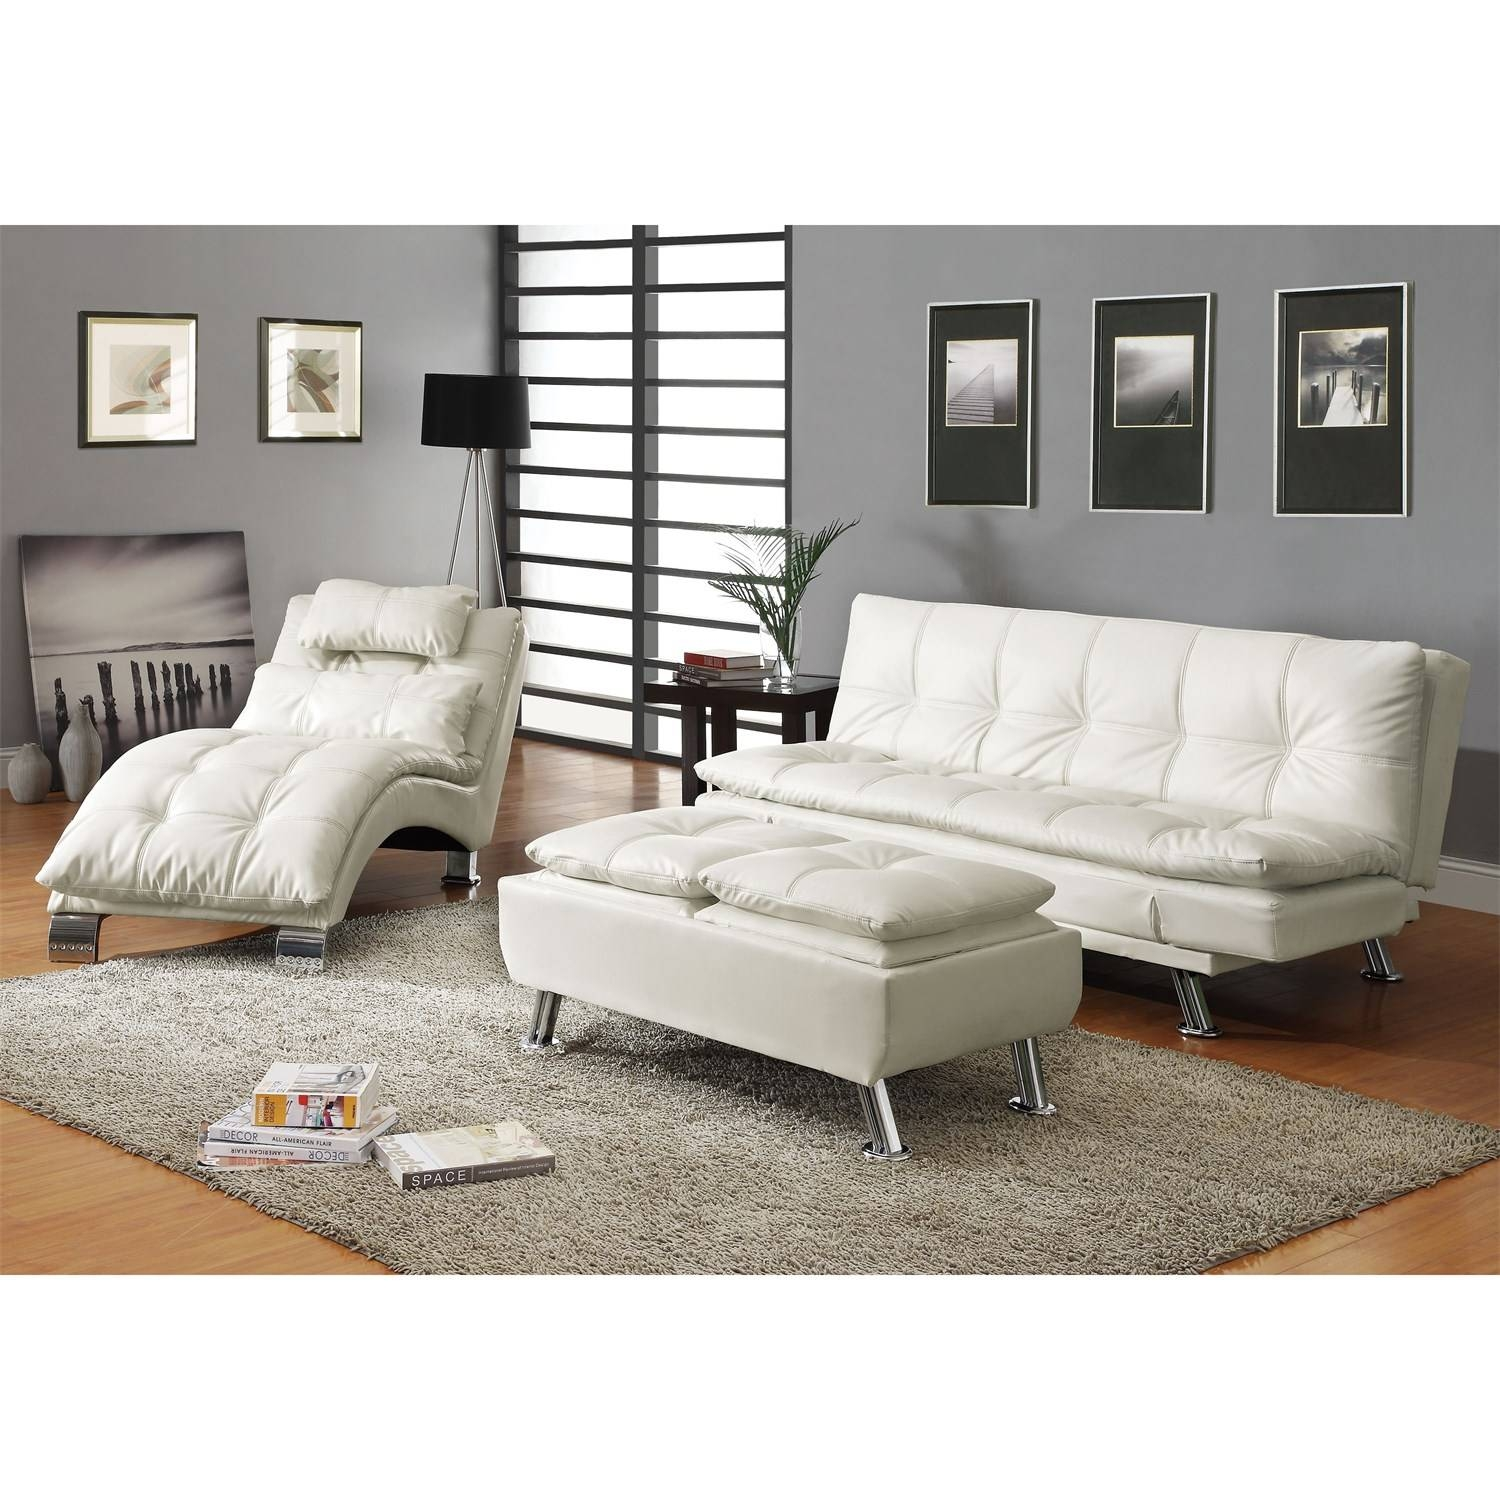 Coaster Furniture 300291 Contemporary Futon Sleeper Sofa Bed In regarding Coaster Futon Sofa Beds (Image 5 of 15)